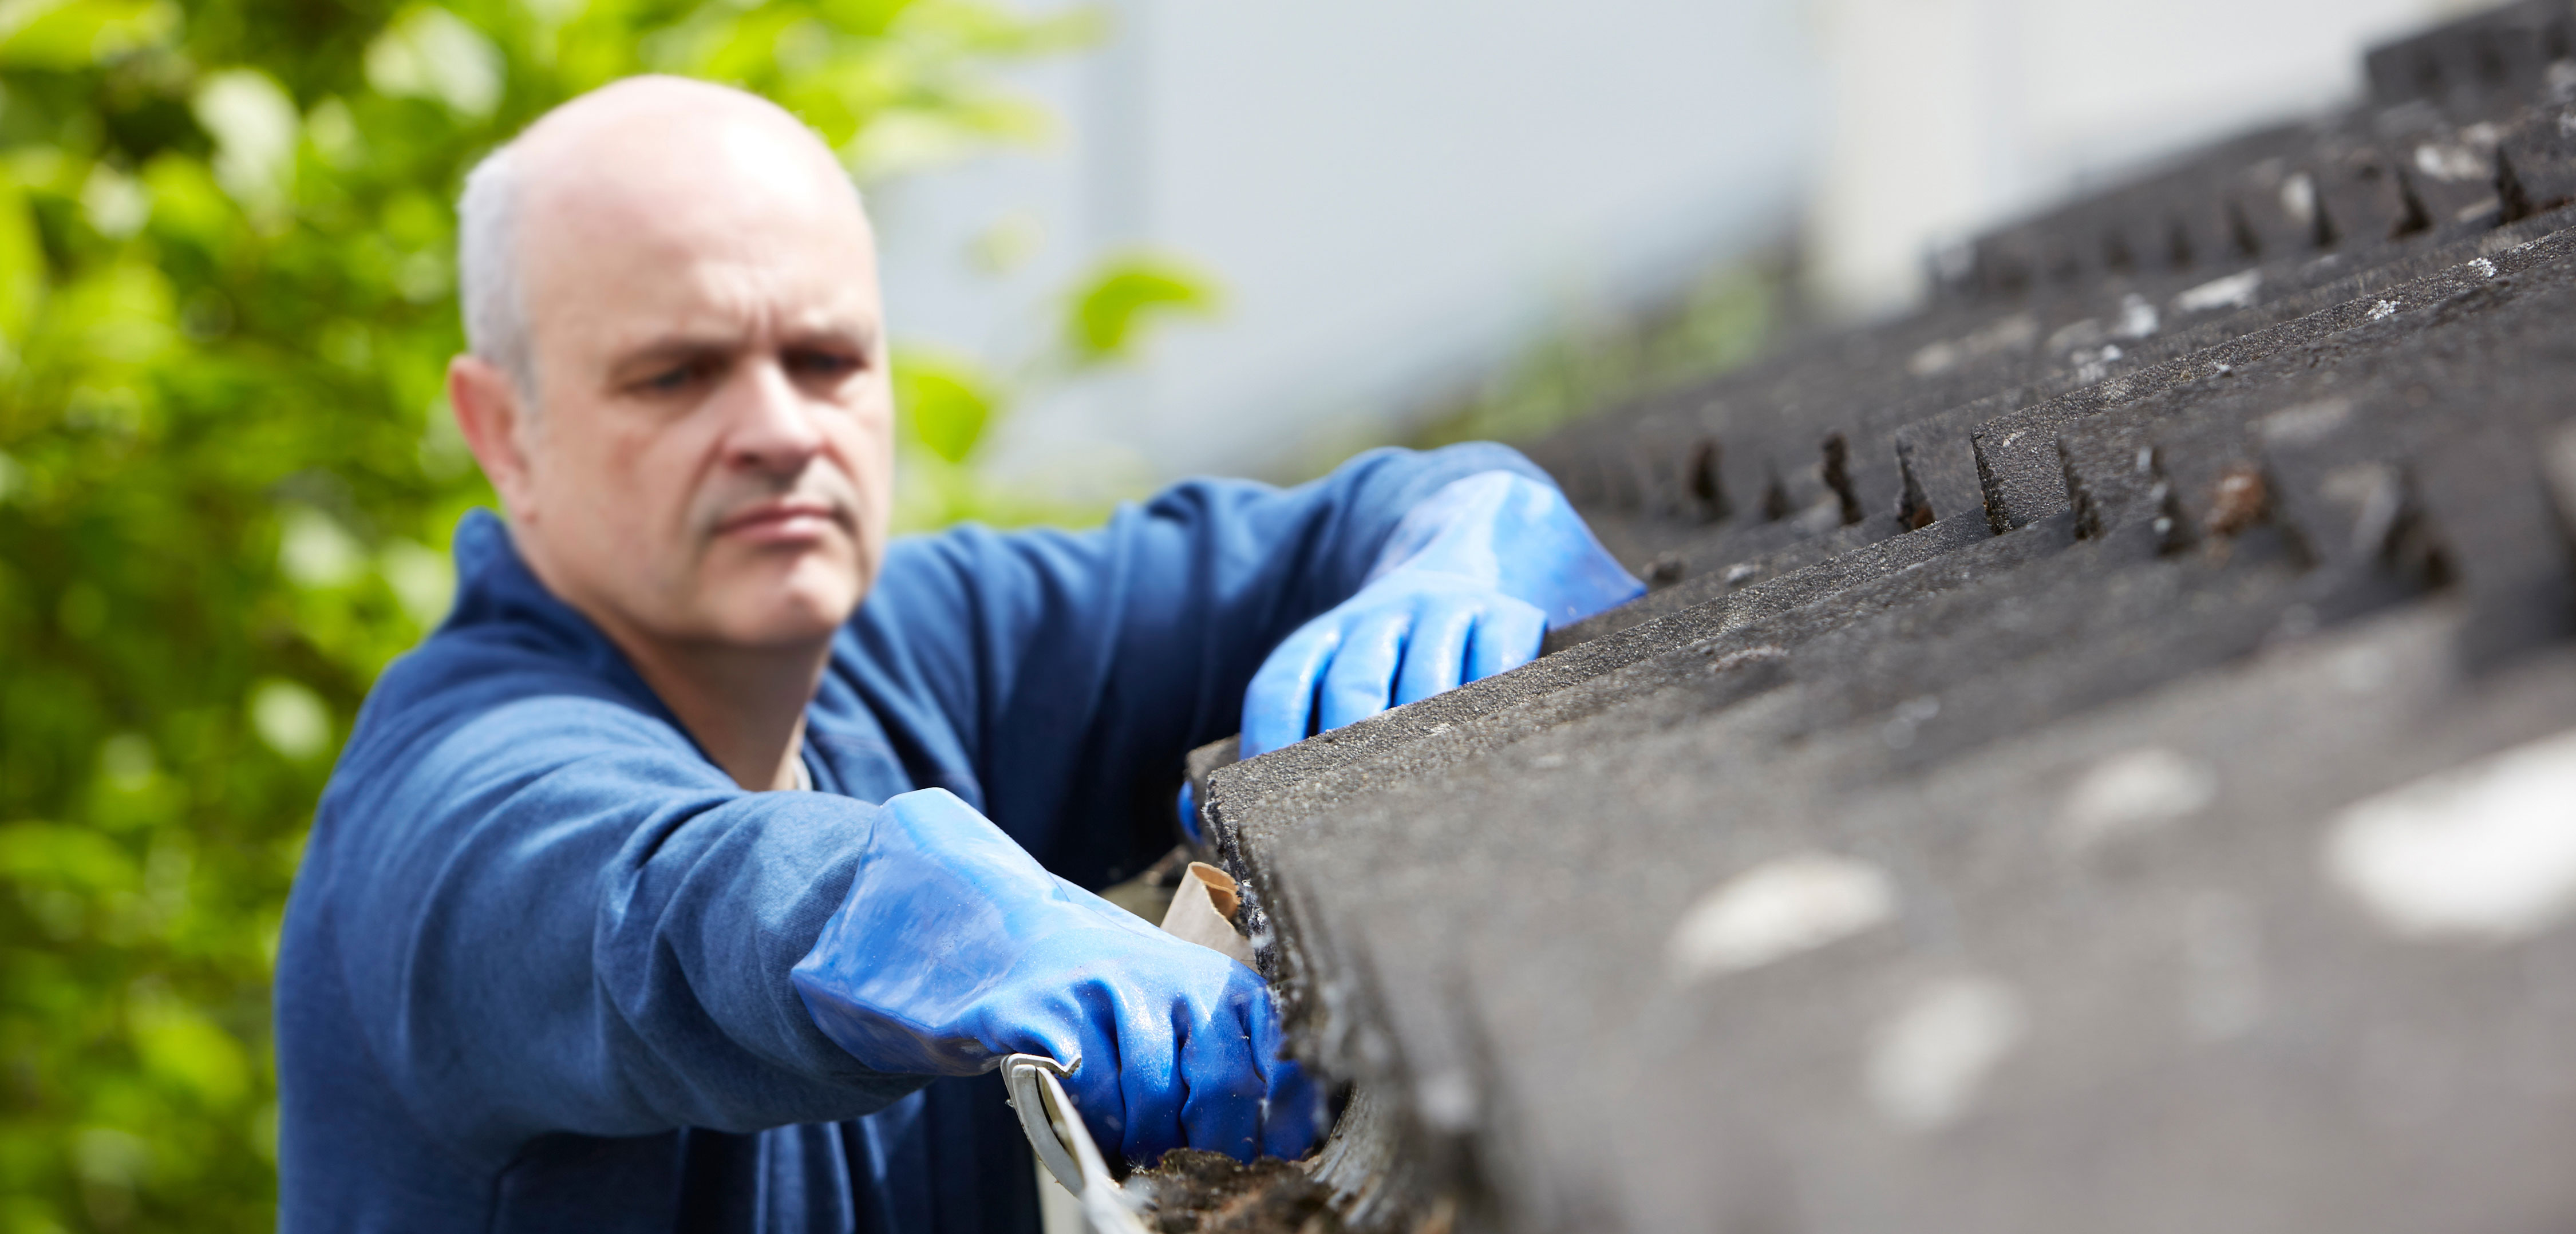 Gutter Cleaning Prices in 2019 | MyBuilder com